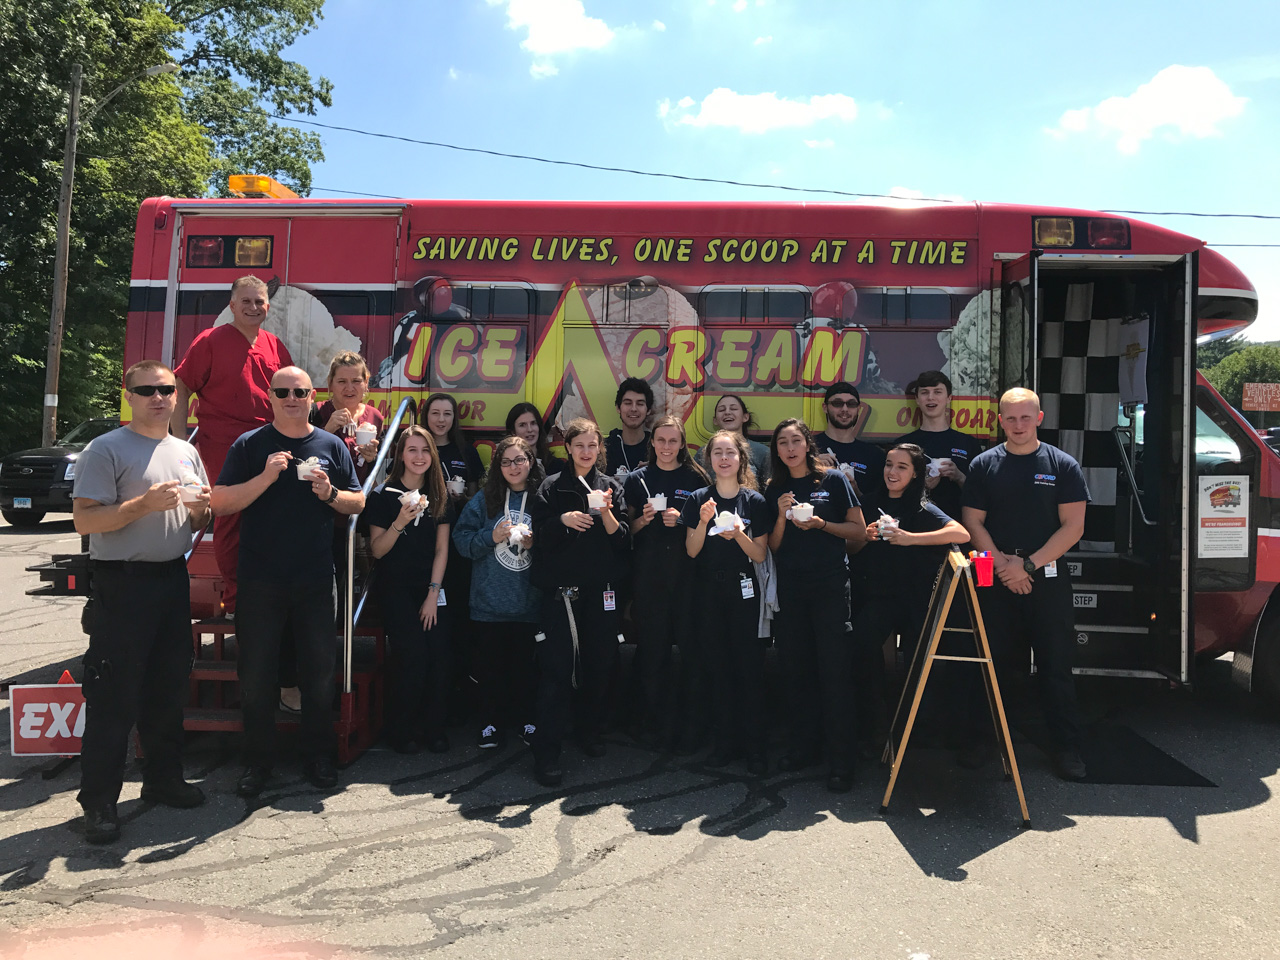 Corporate Event with Ice Cream Emergency